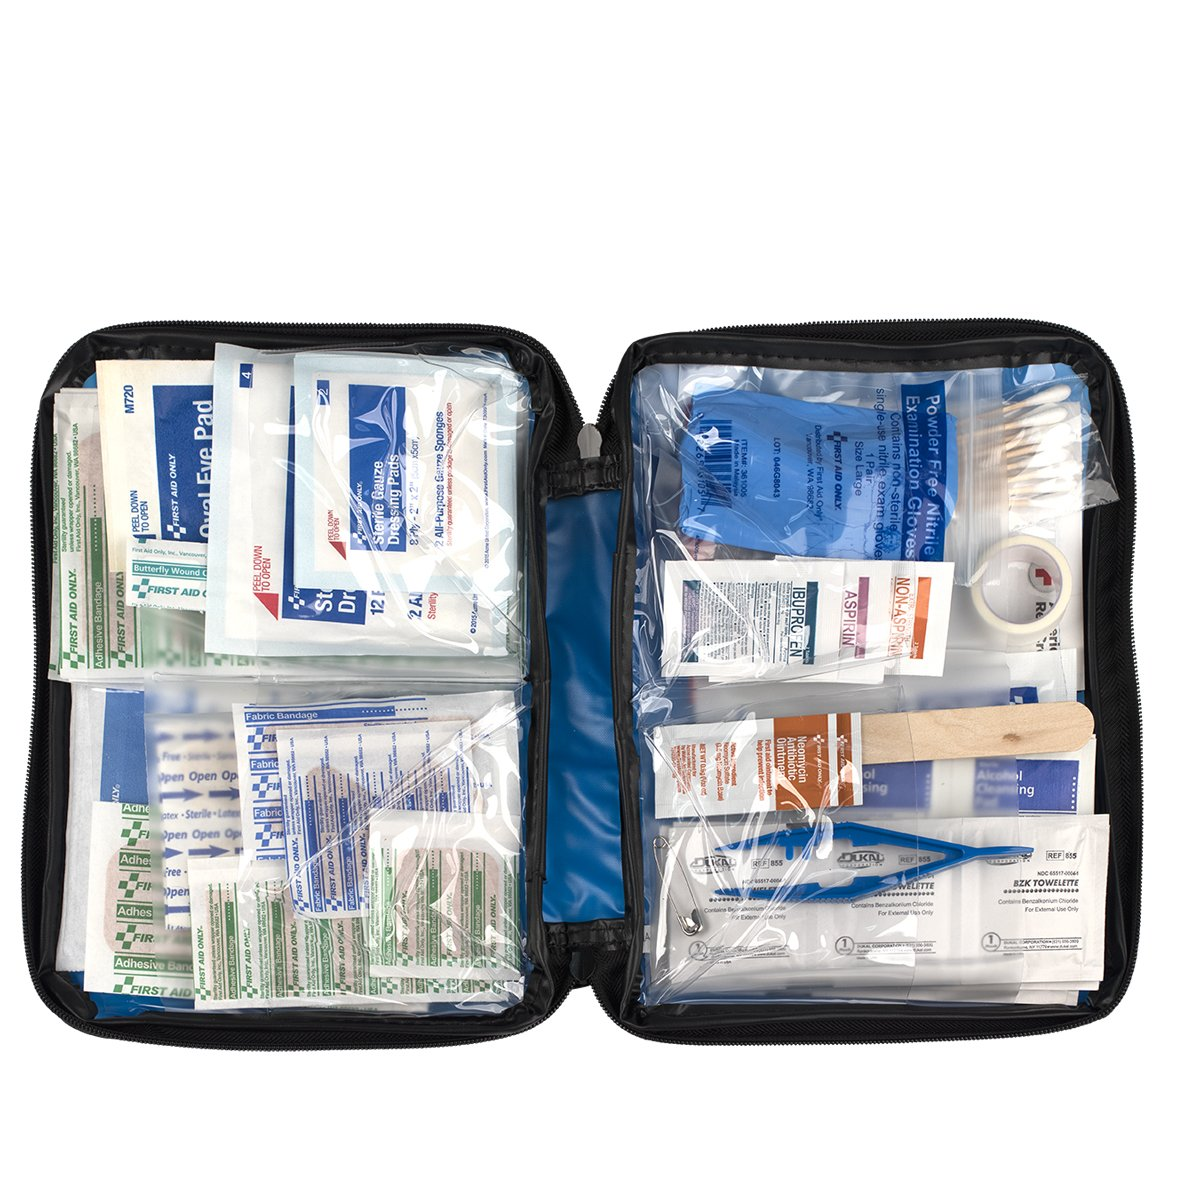 First Aid Only All-purpose First Aid Kit, Soft Case (131 Piece) by First Aid Only